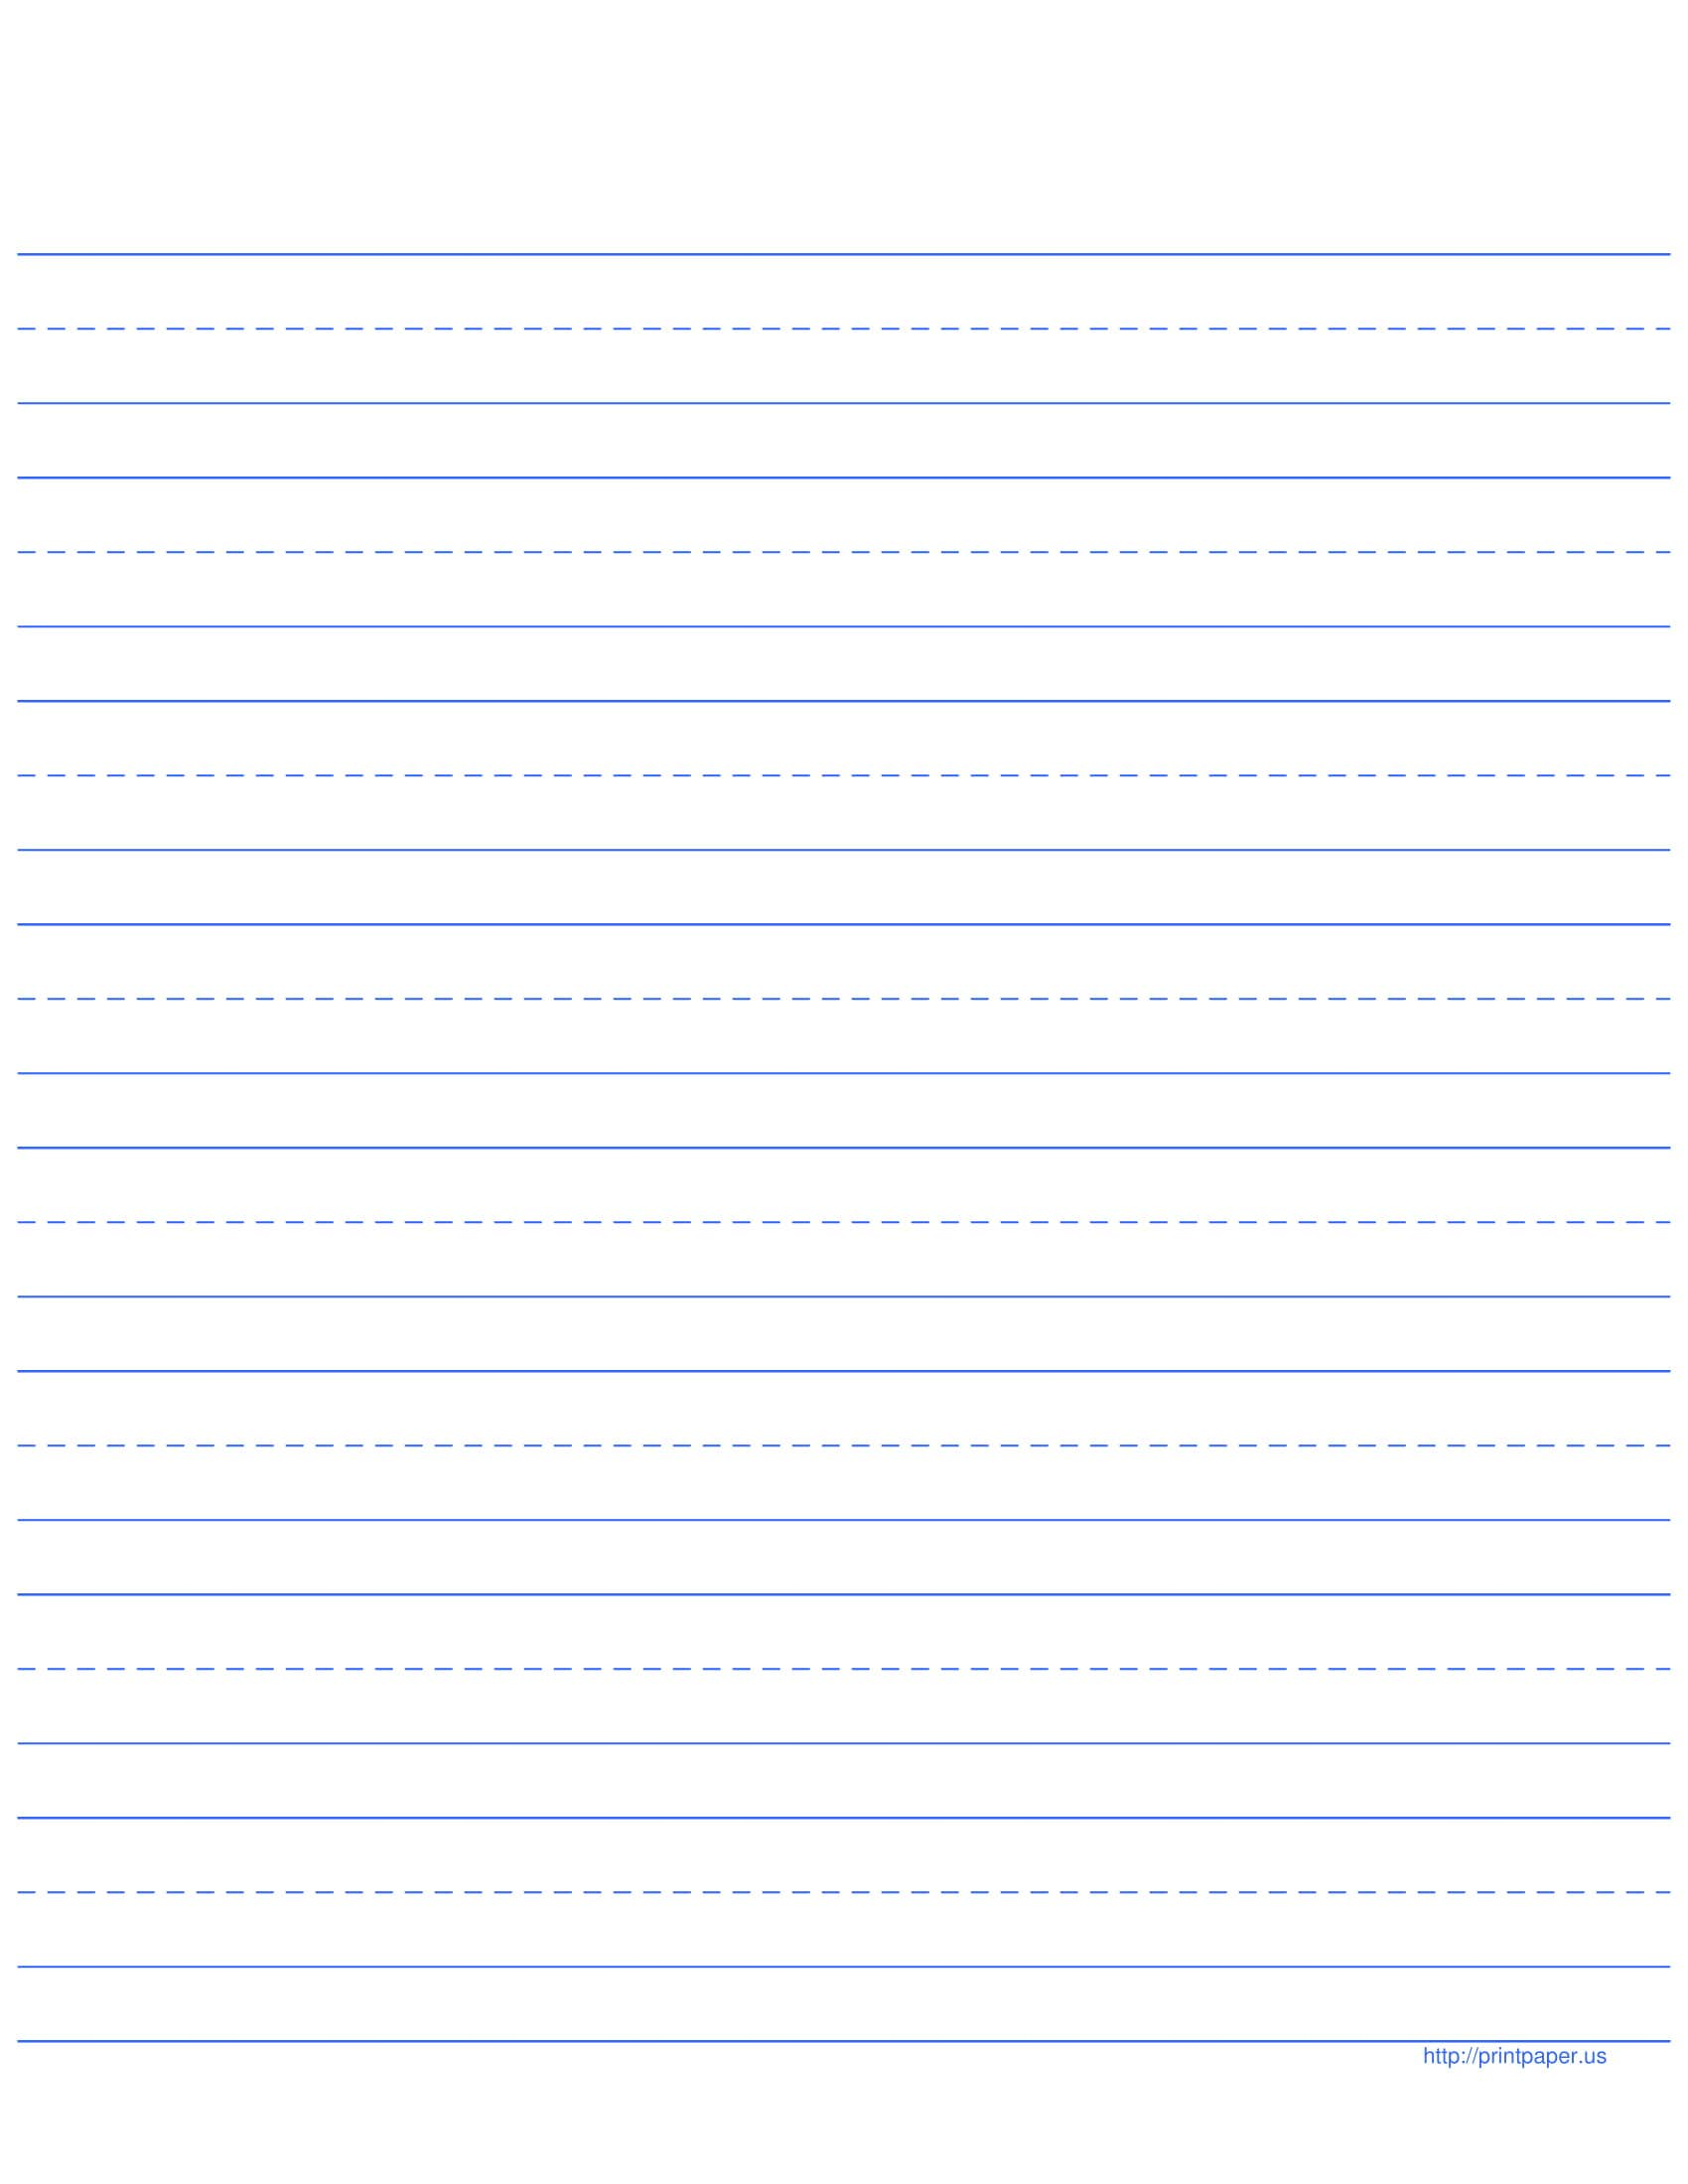 story time lined paper template